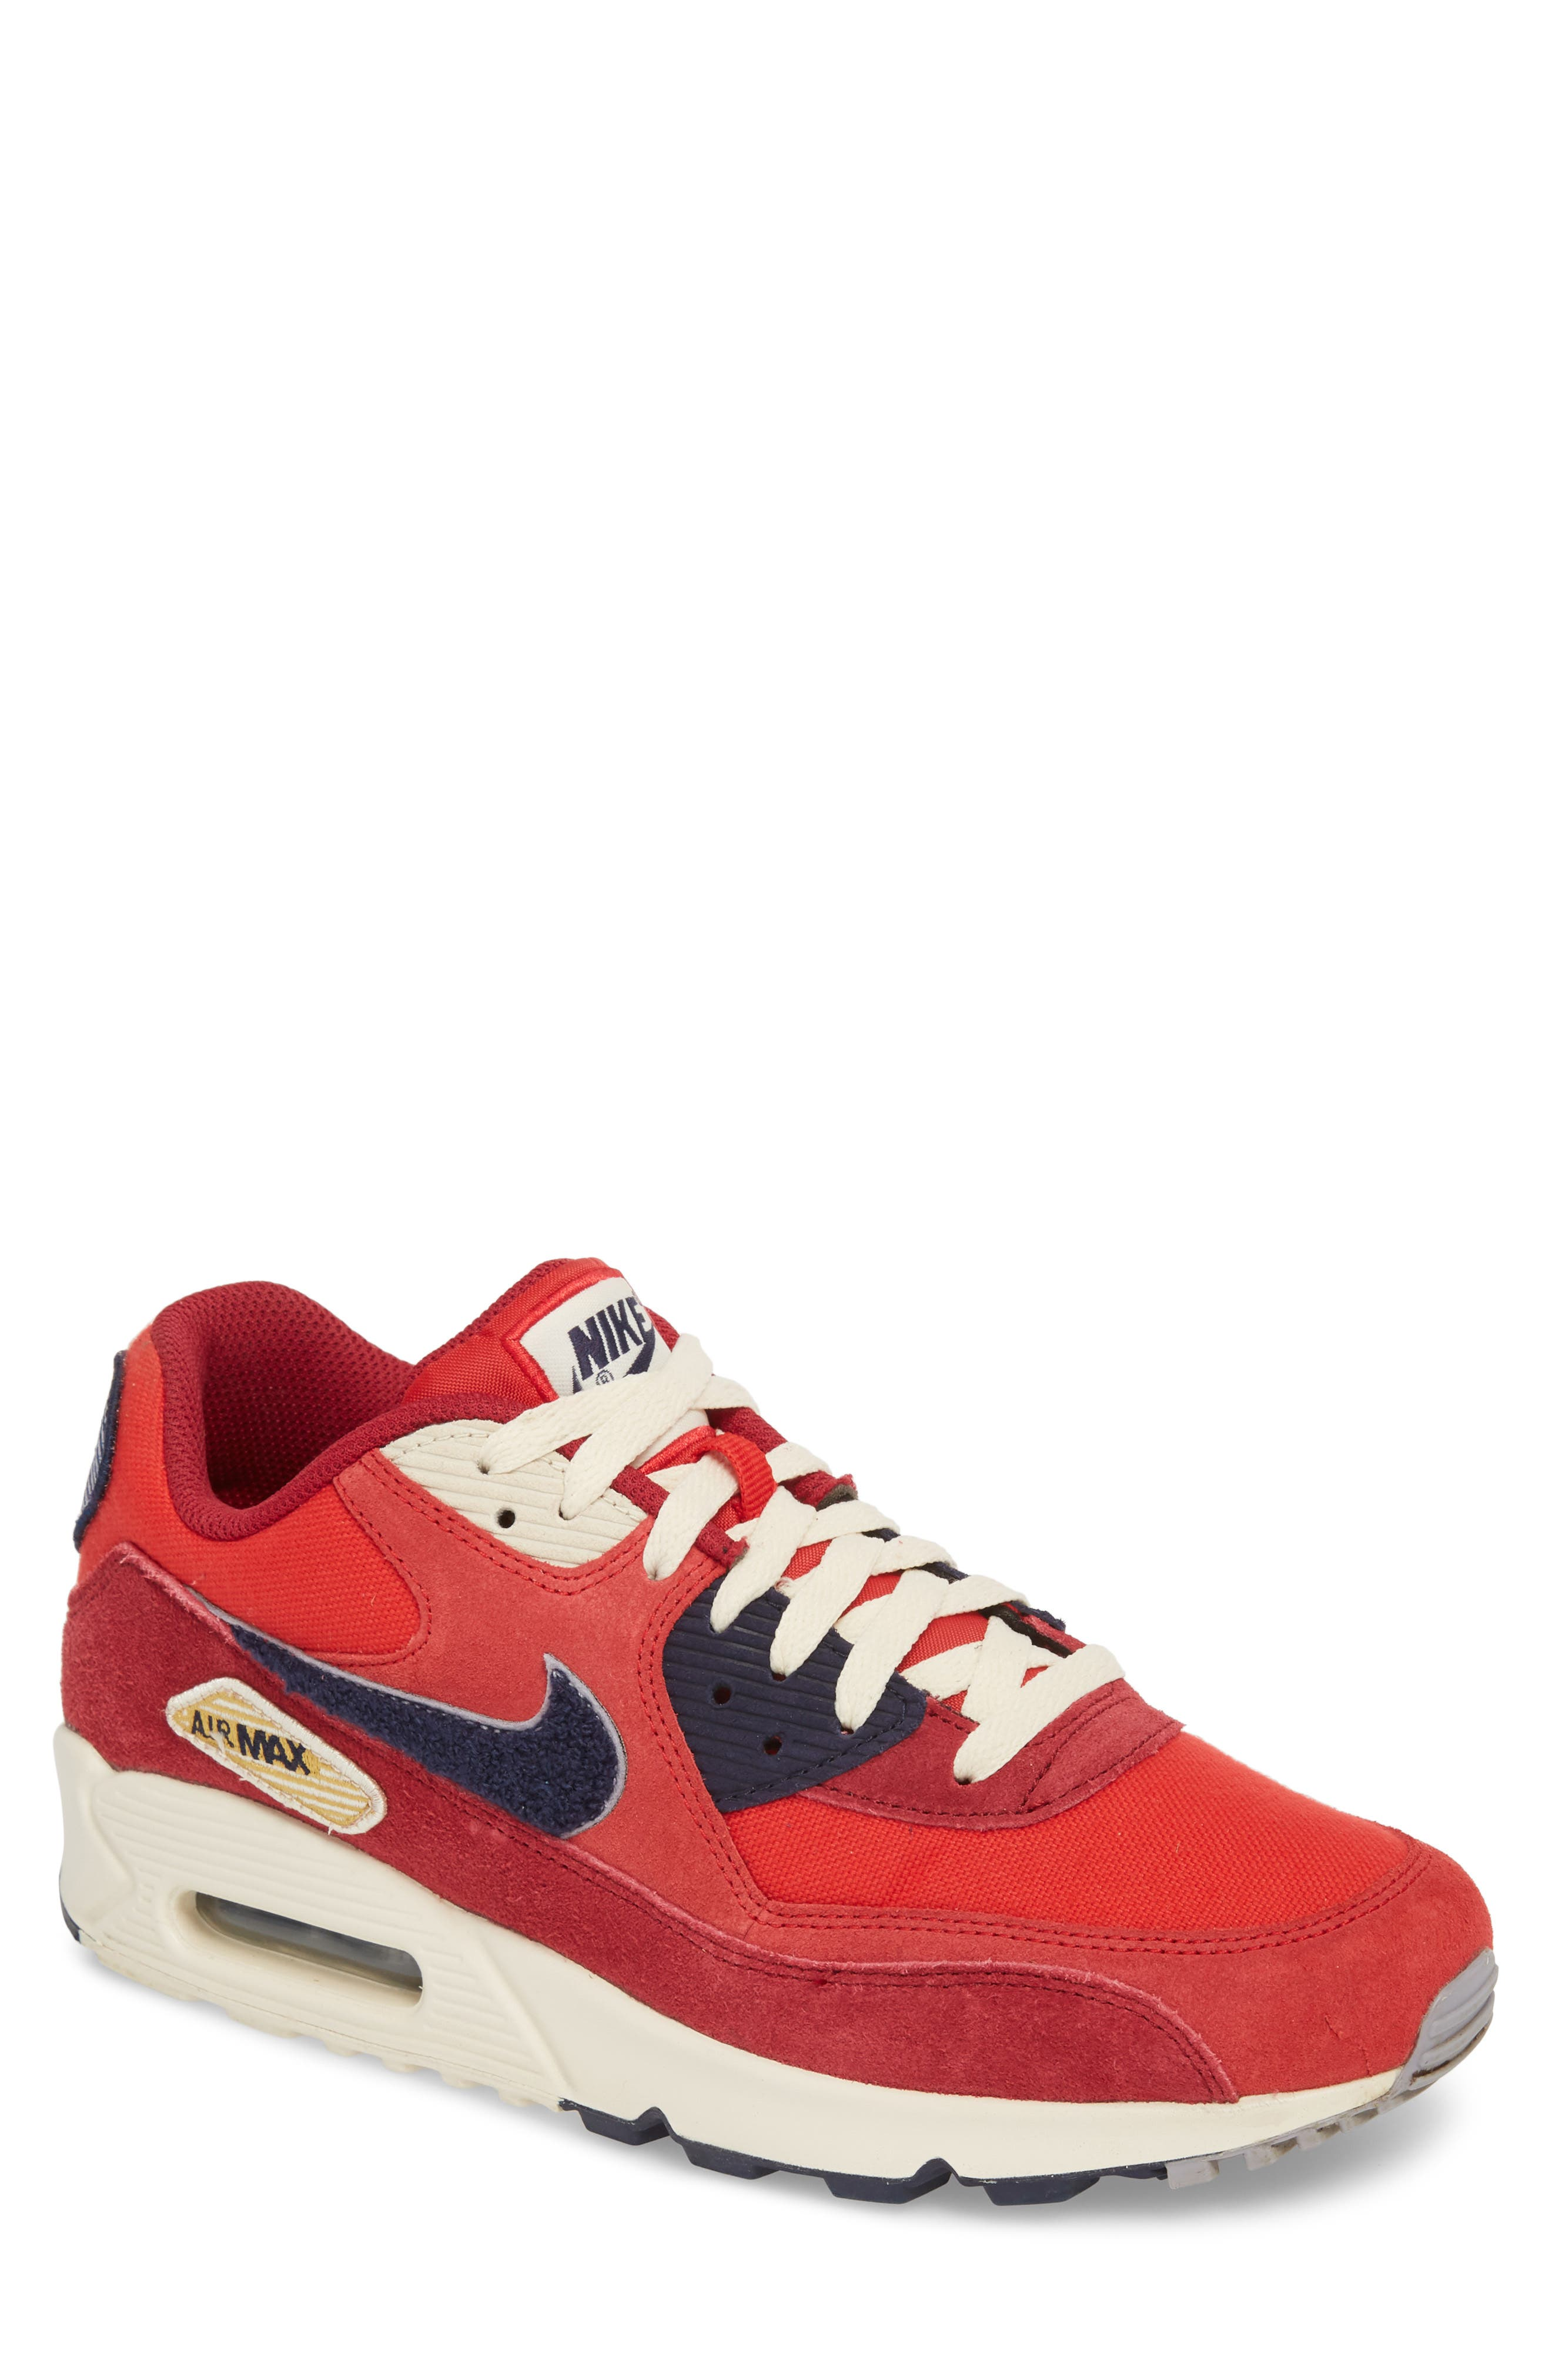 Air Max 90 Premium Sneaker,                             Main thumbnail 2, color,